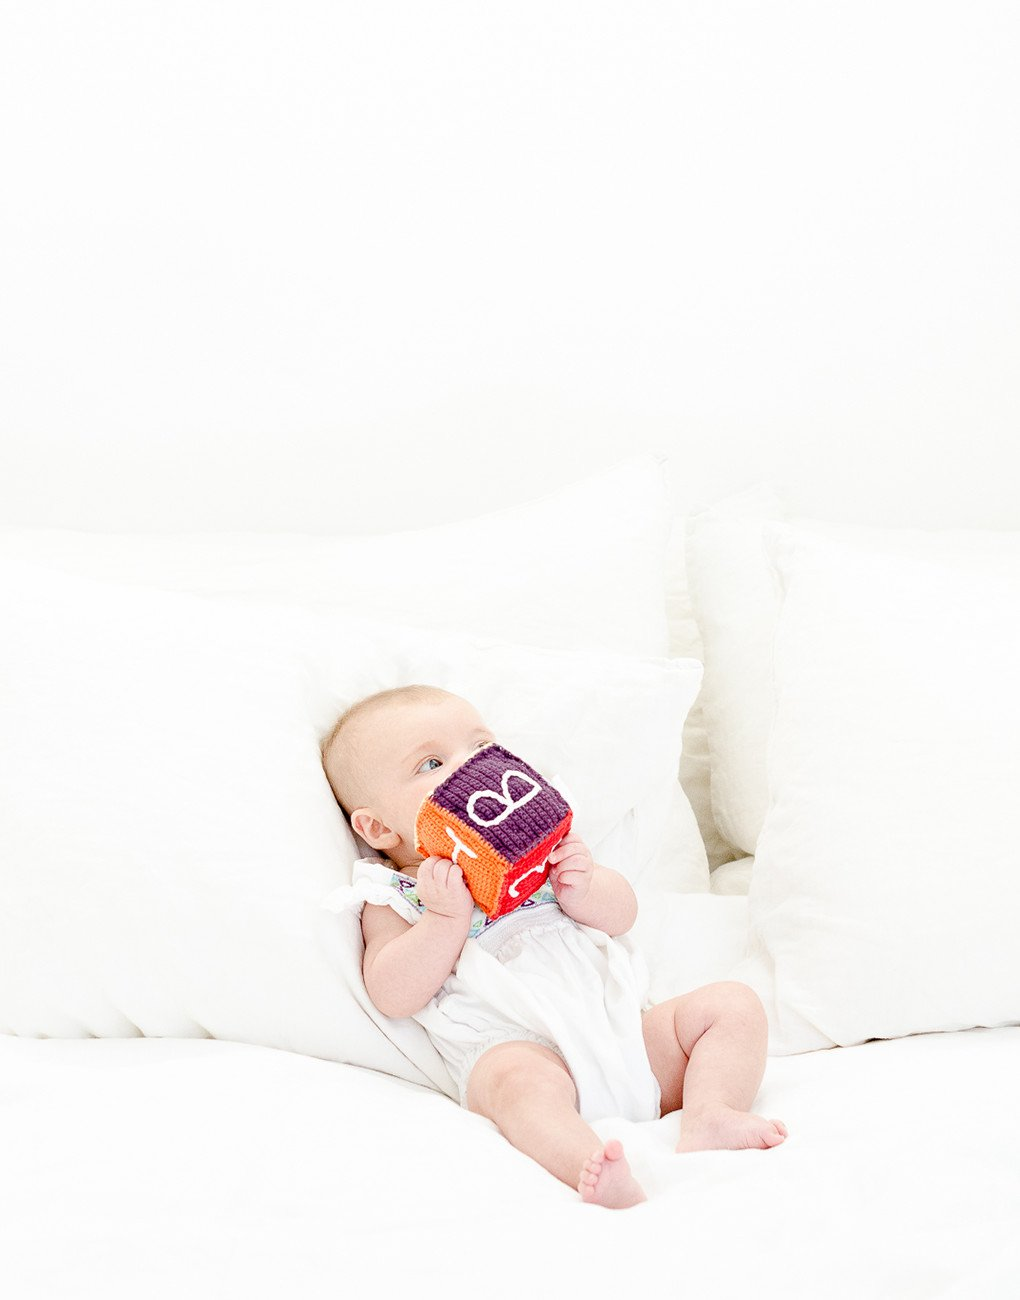 a3b19c3881f Peurobaby - Organic and natural baby essentials from Europe